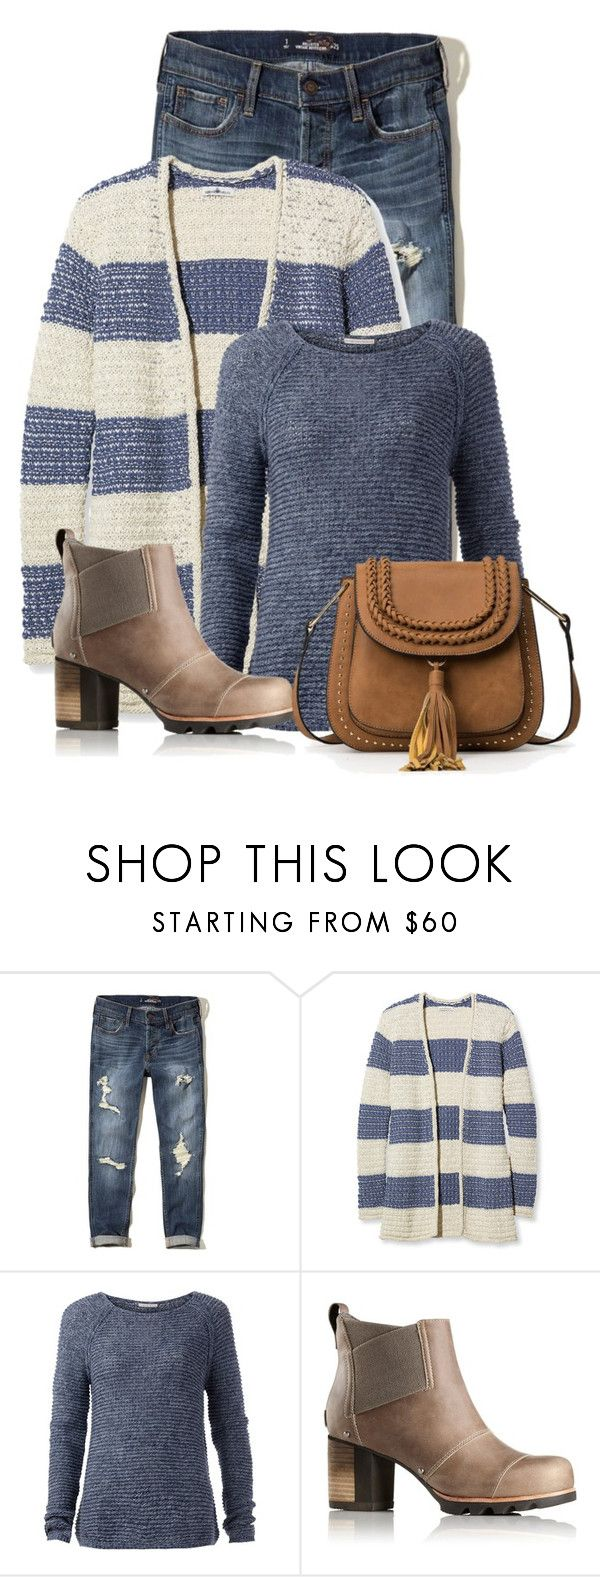 """Untitled #19756"" by nanette-253 ❤ liked on Polyvore featuring Hollister Co., L.L.Bean, Tommy Hilfiger and SOREL"